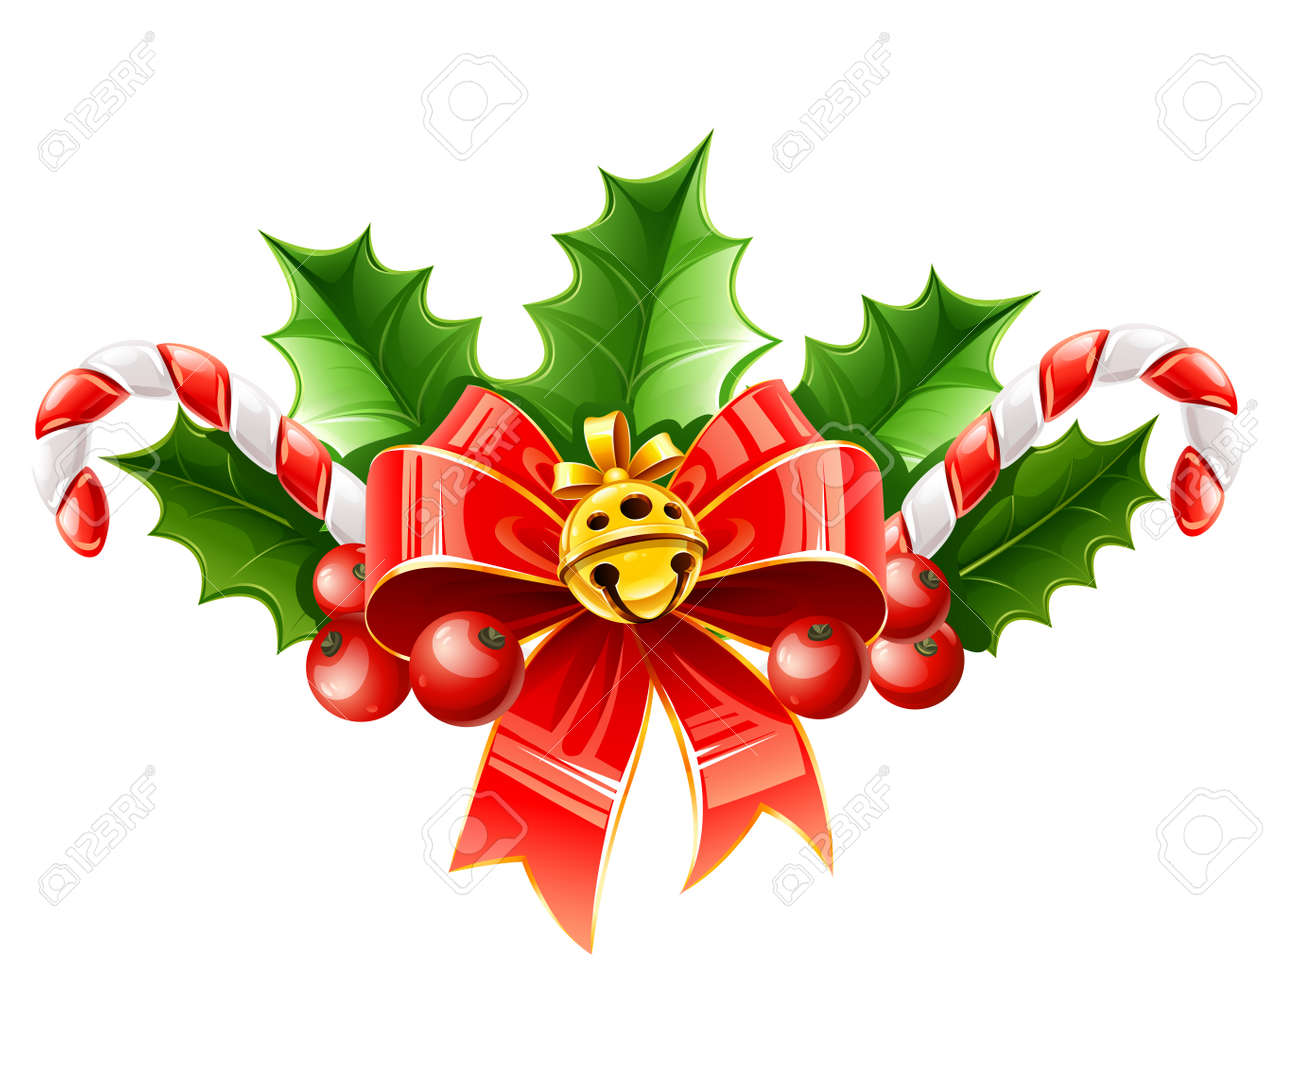 christmas decoration of red bow with gold bell and holly leaves illustration isolated on white background Stock Vector - 11405895